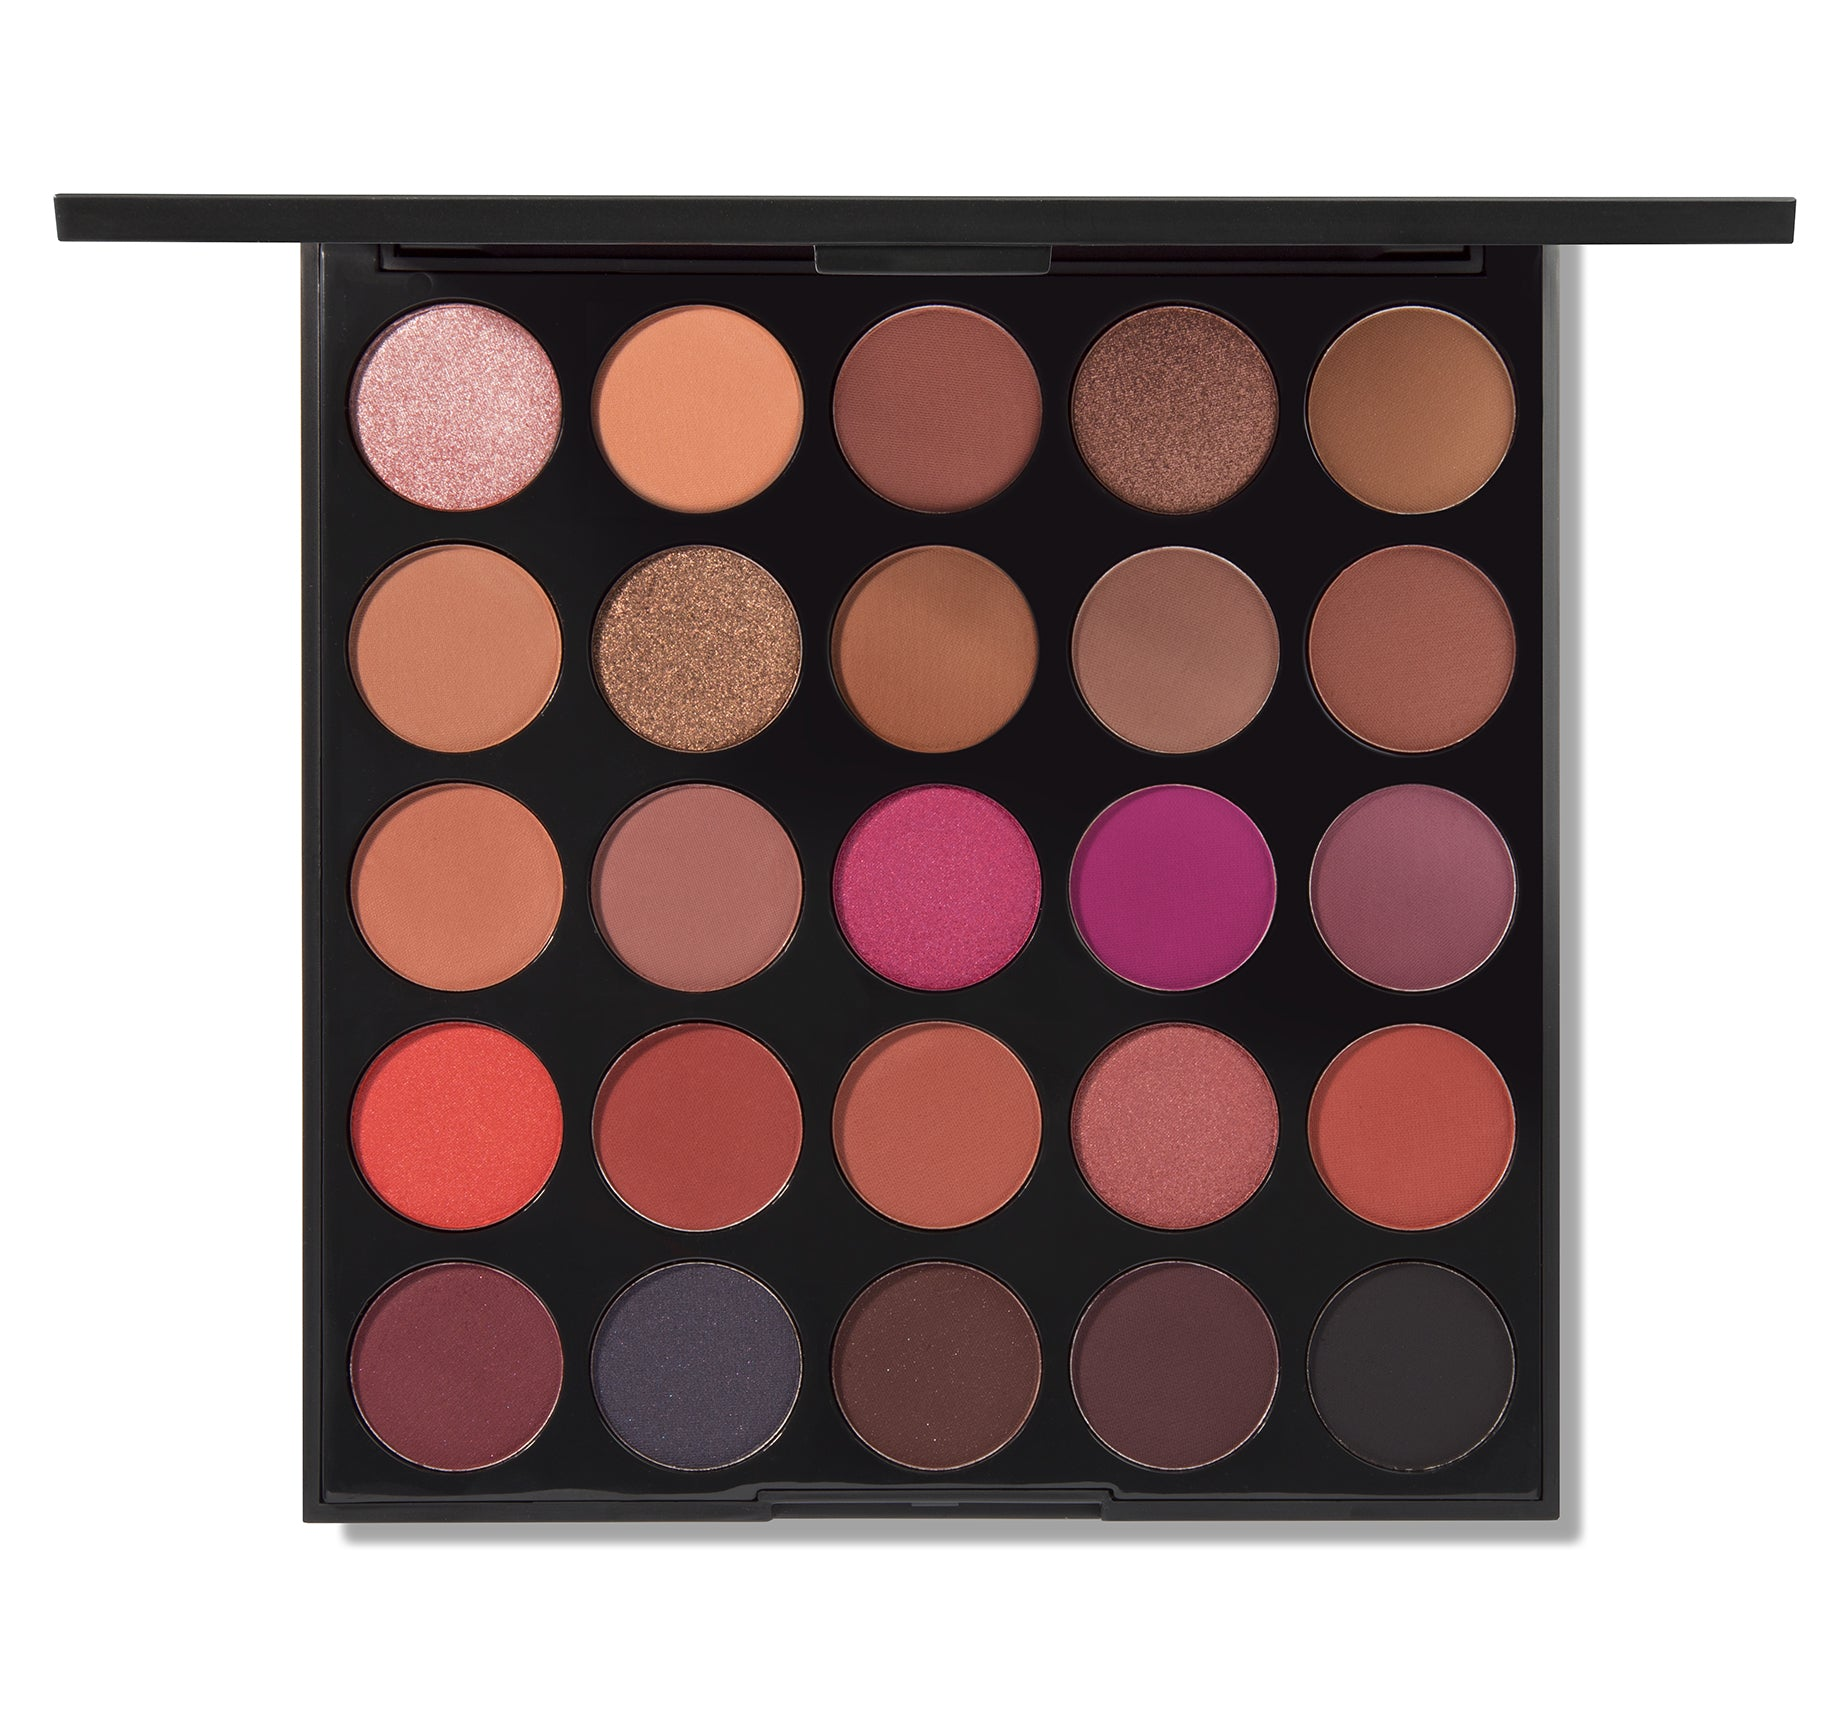 25C HEY GIRL HEY ARTISTRY PALETTE, view larger image